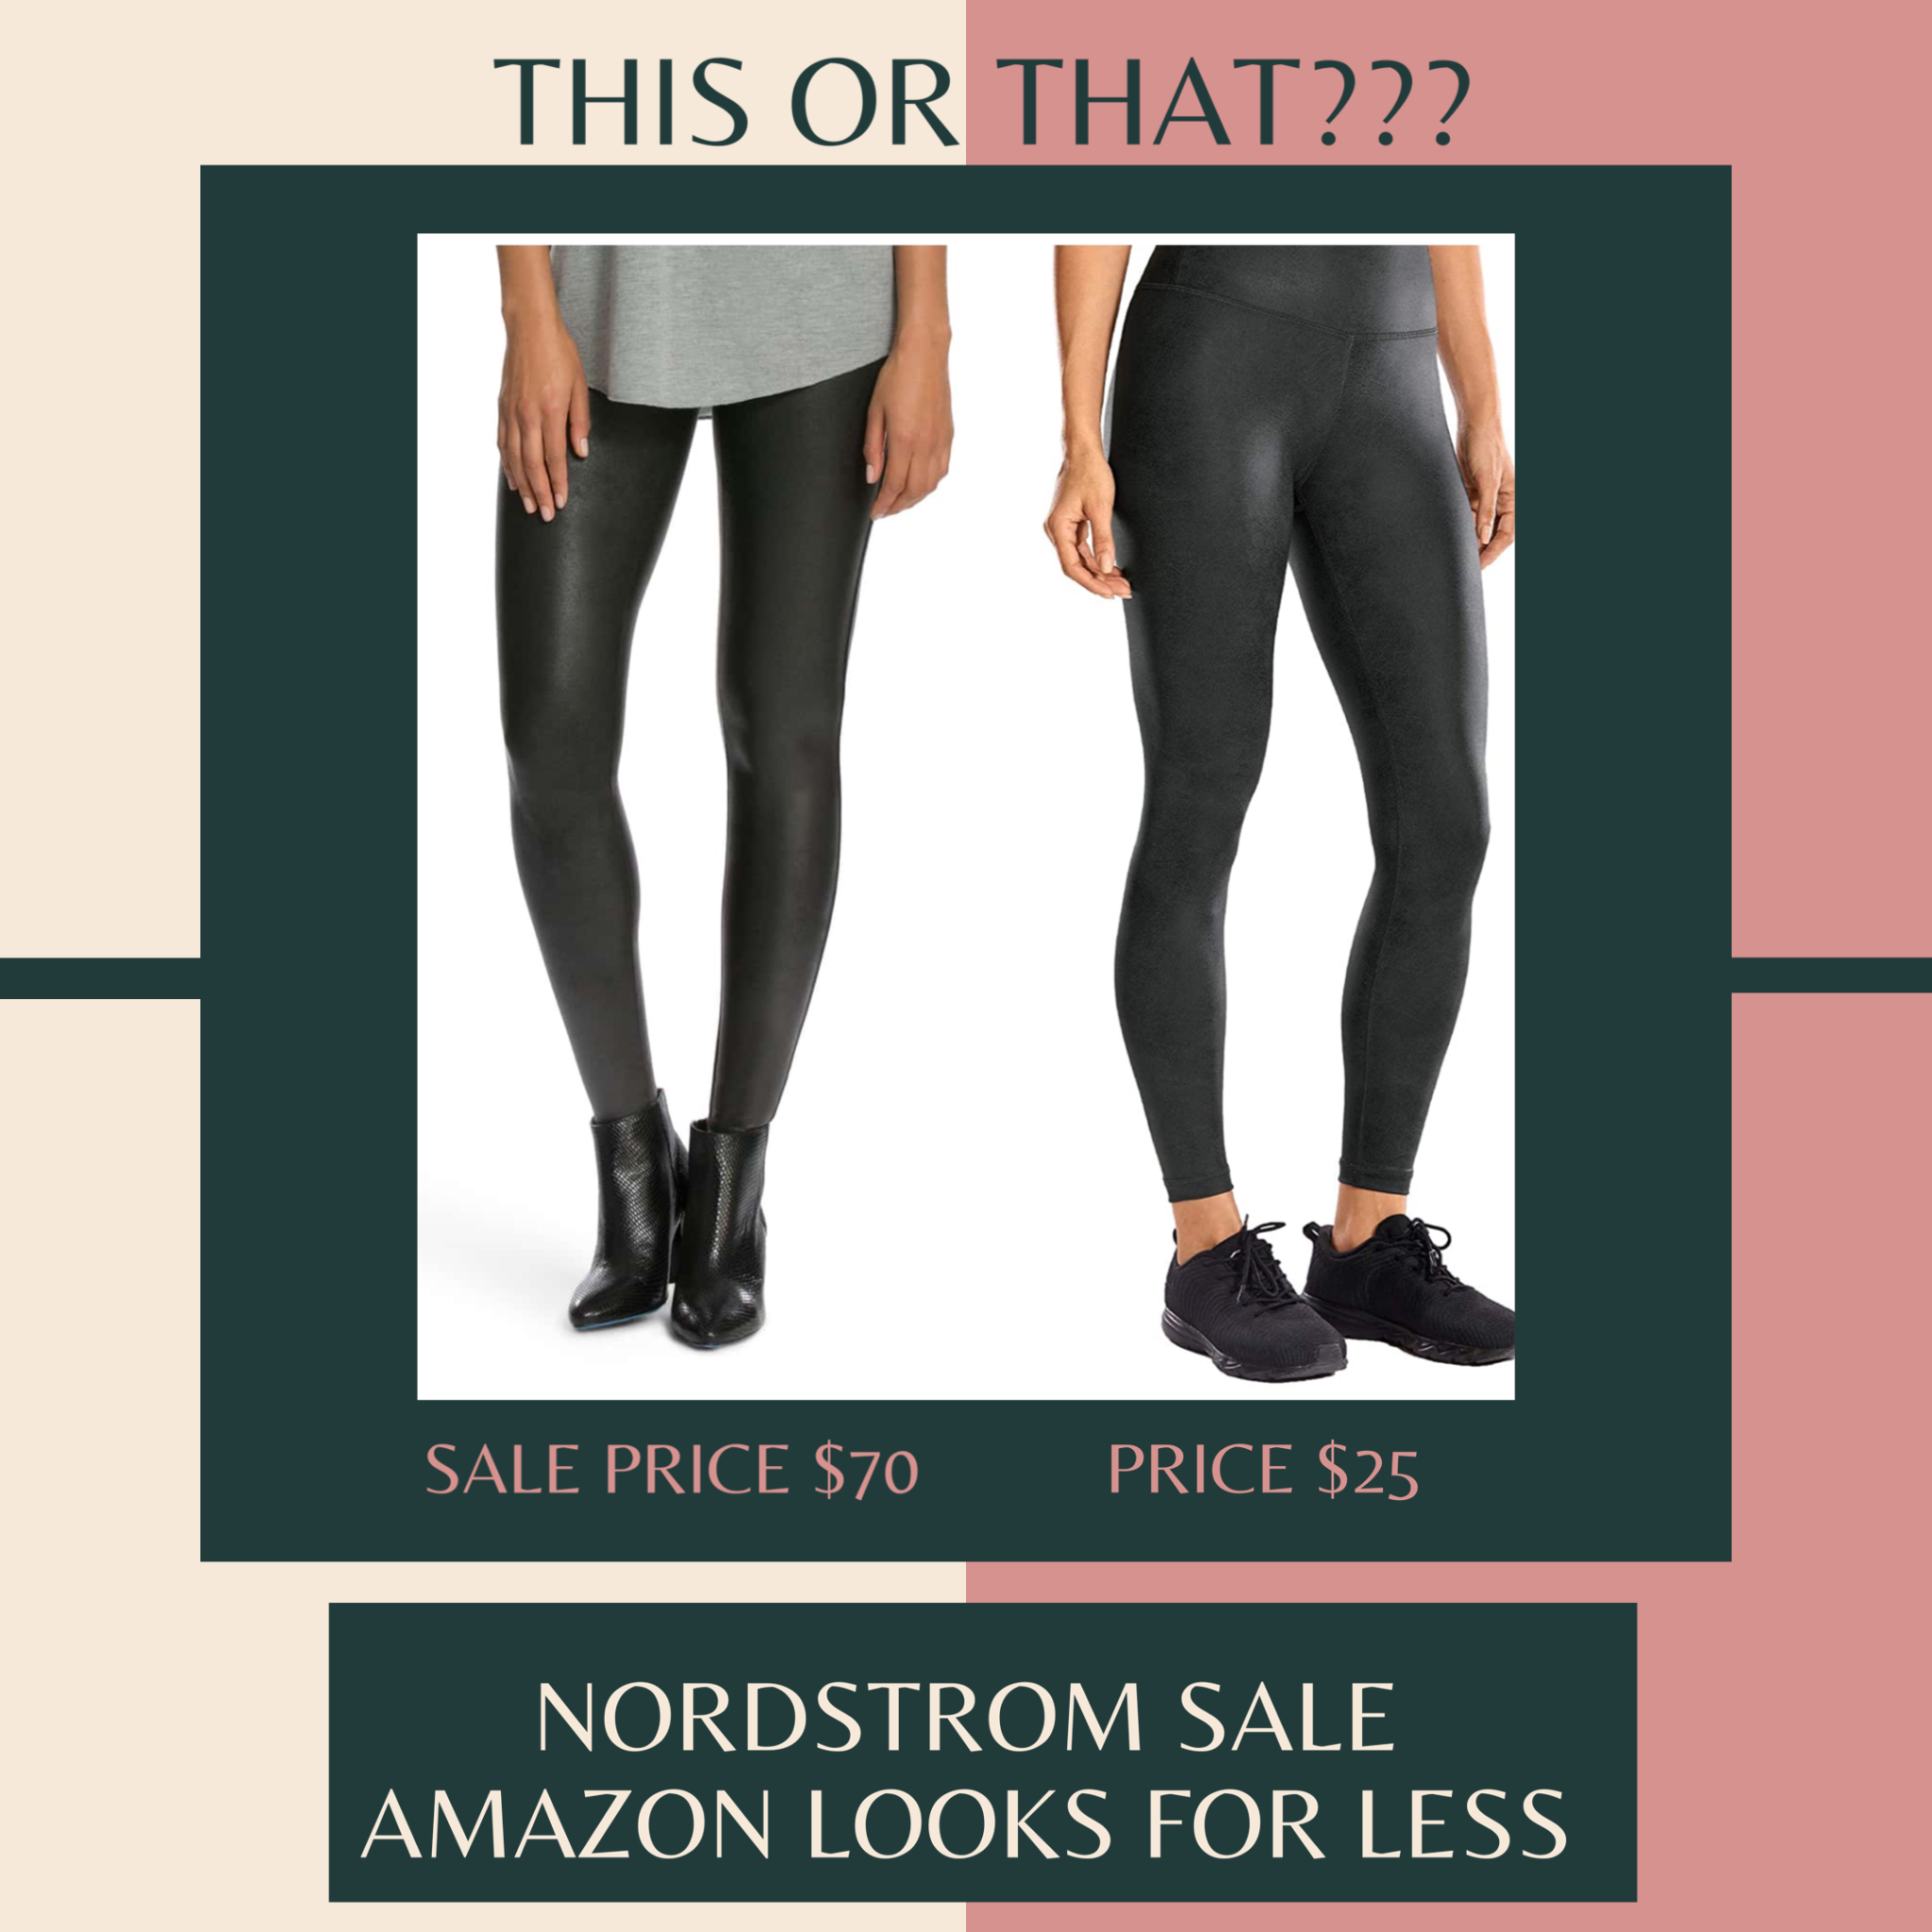 Nordstrom Sale – Amazon Looks For Less